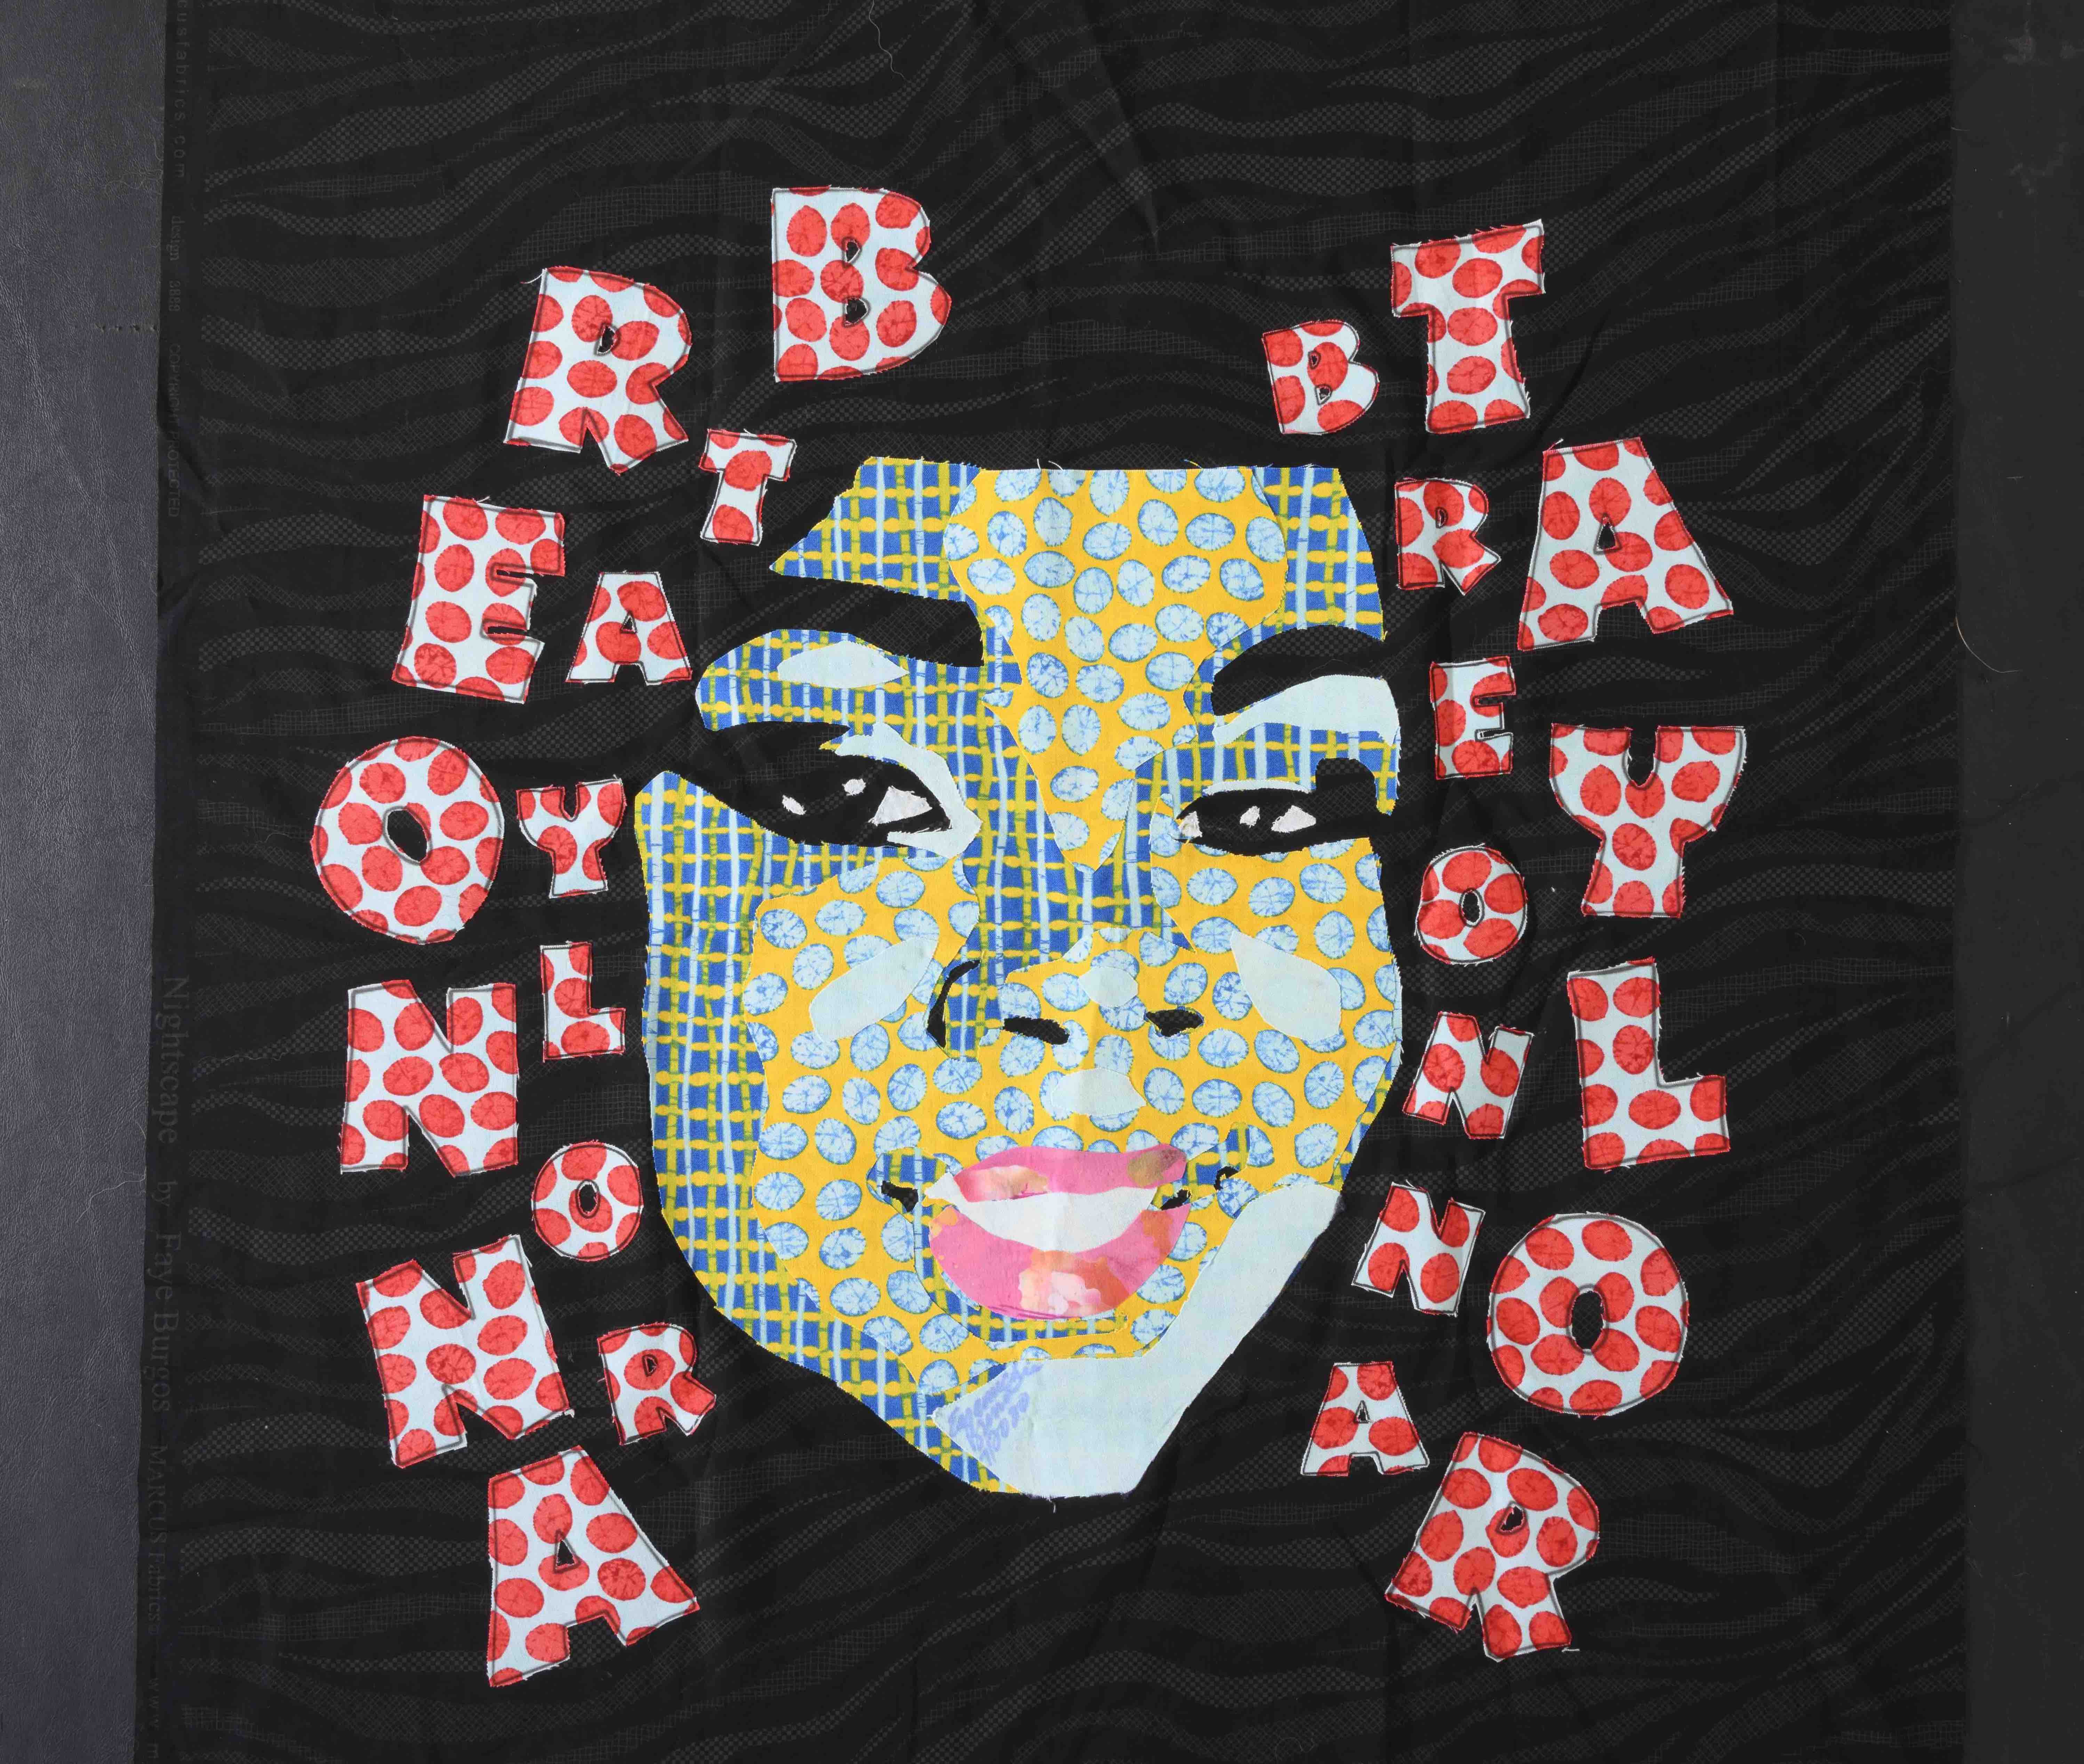 Quilt design of Breonna Taylor